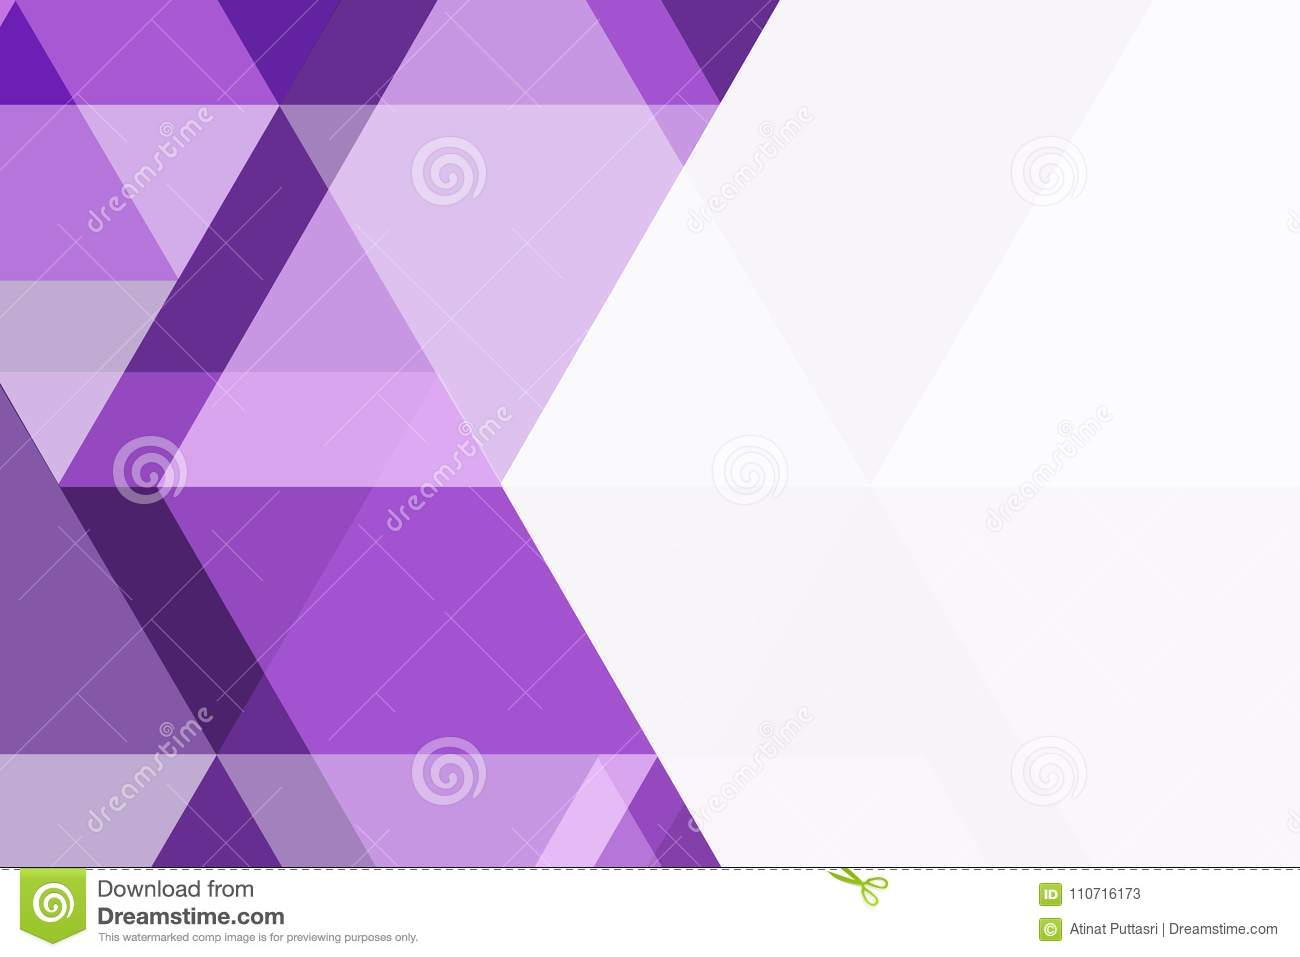 Violet And White Triangle Geometric Abstract Background Stock Vector Illustration Of Banner Geometric 110716173